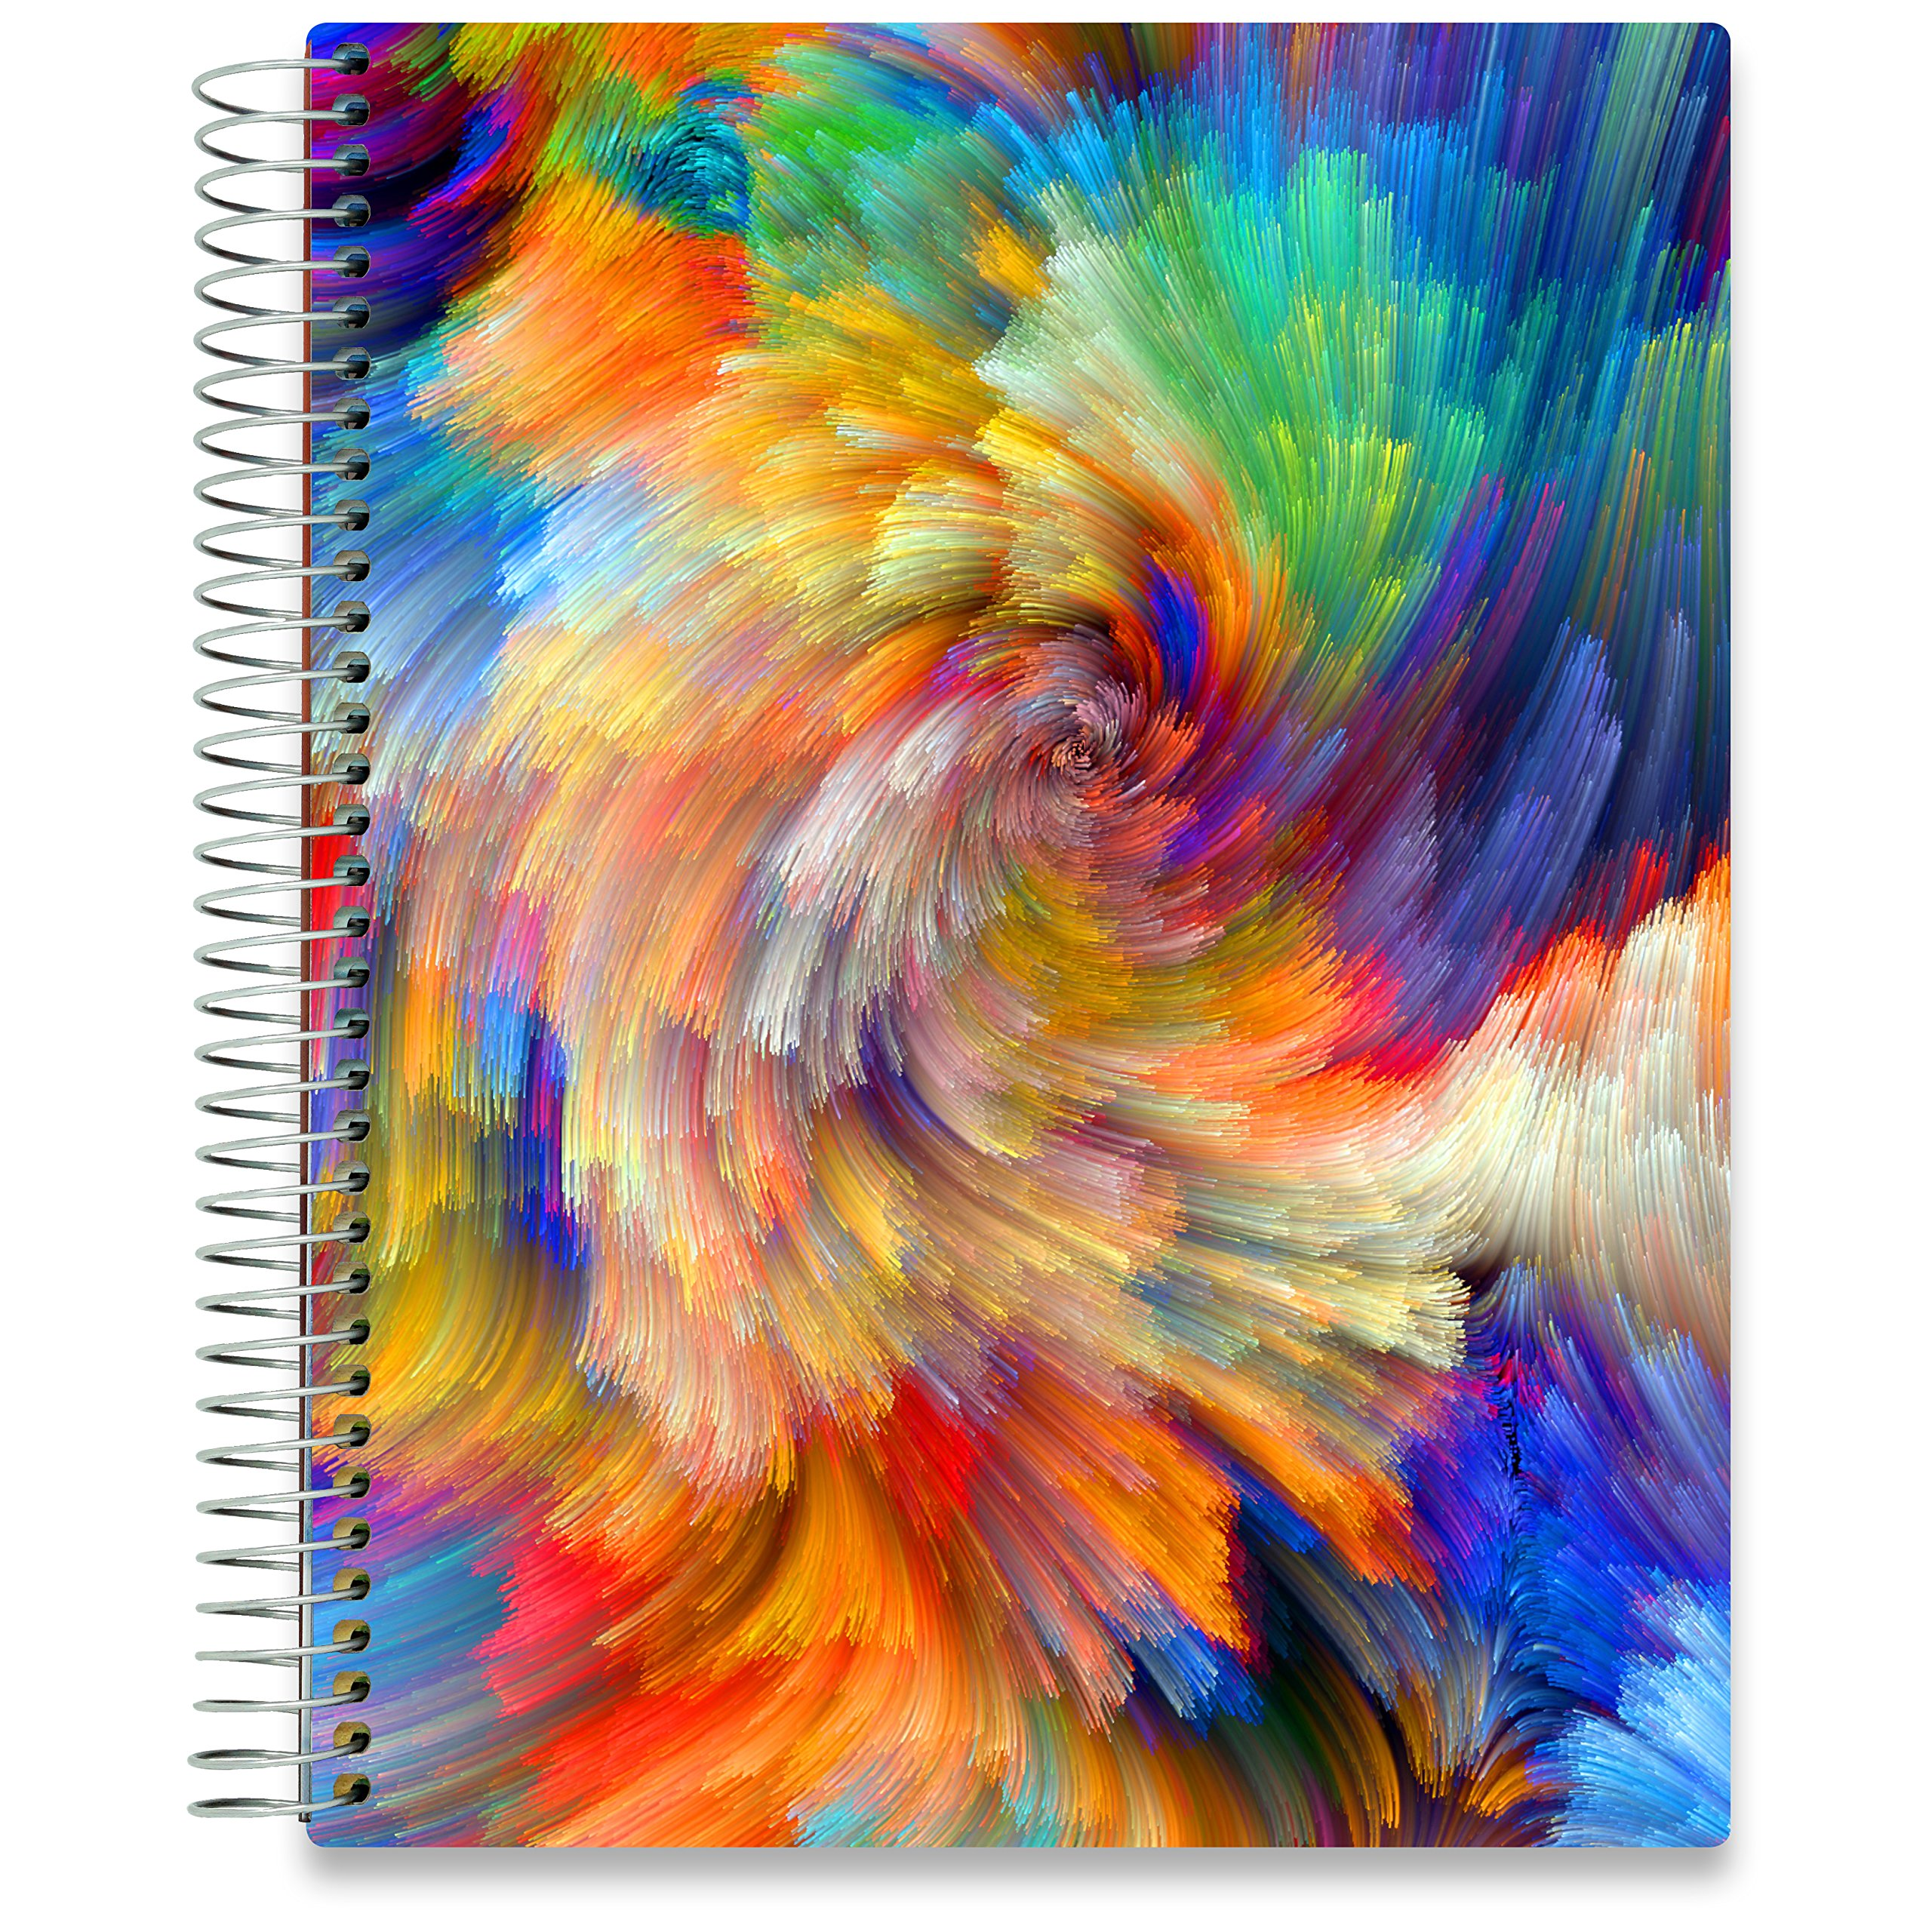 Tools4Wisdom 2020 Planner October 2019-2020 - 8.5 x 11 Hardcover - Daily Weekly Monthly Planner - Dated Oct November December 2019 Plus 2020 Calendar Year by Tools4Wisdom